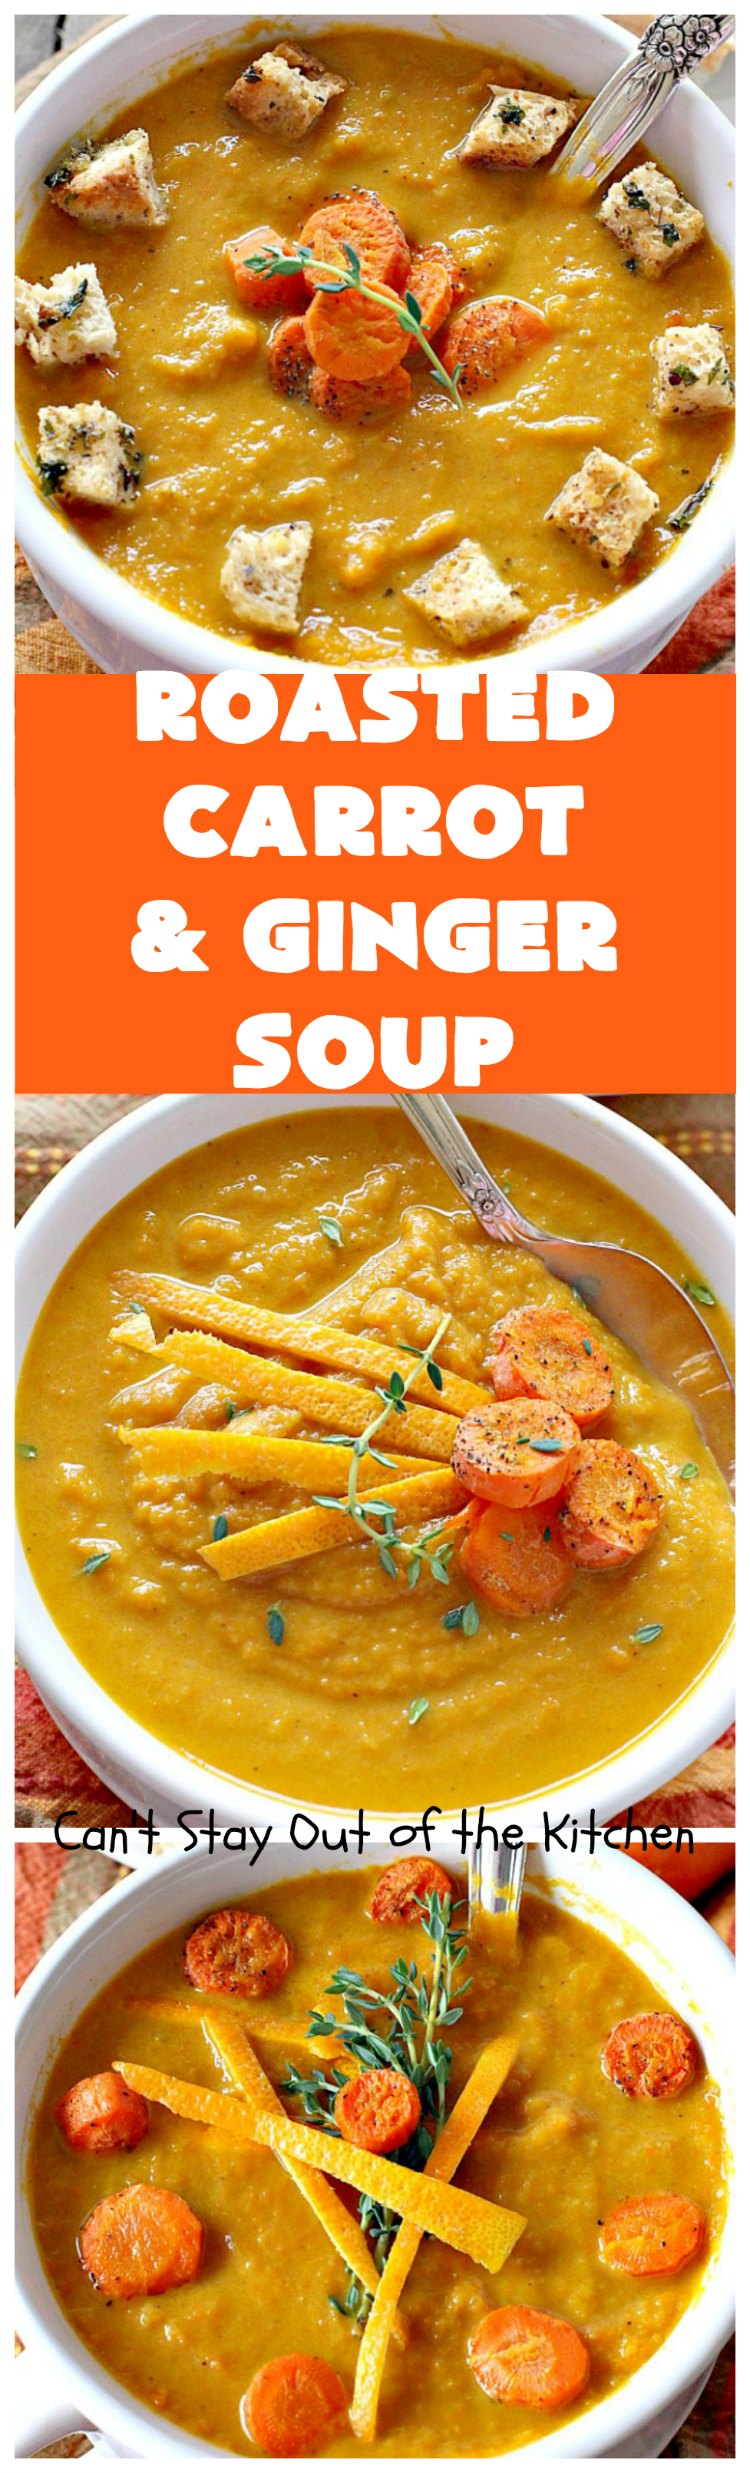 Roasted Carrot and Ginger Soup | Can't Stay Out of the Kitchen | this lovely #soup is creamy & delicious & perfect for cold, winter nights when you want comfort food. #carrots #ginger #leeks #glutenfree #vegan #MeatlessMondays